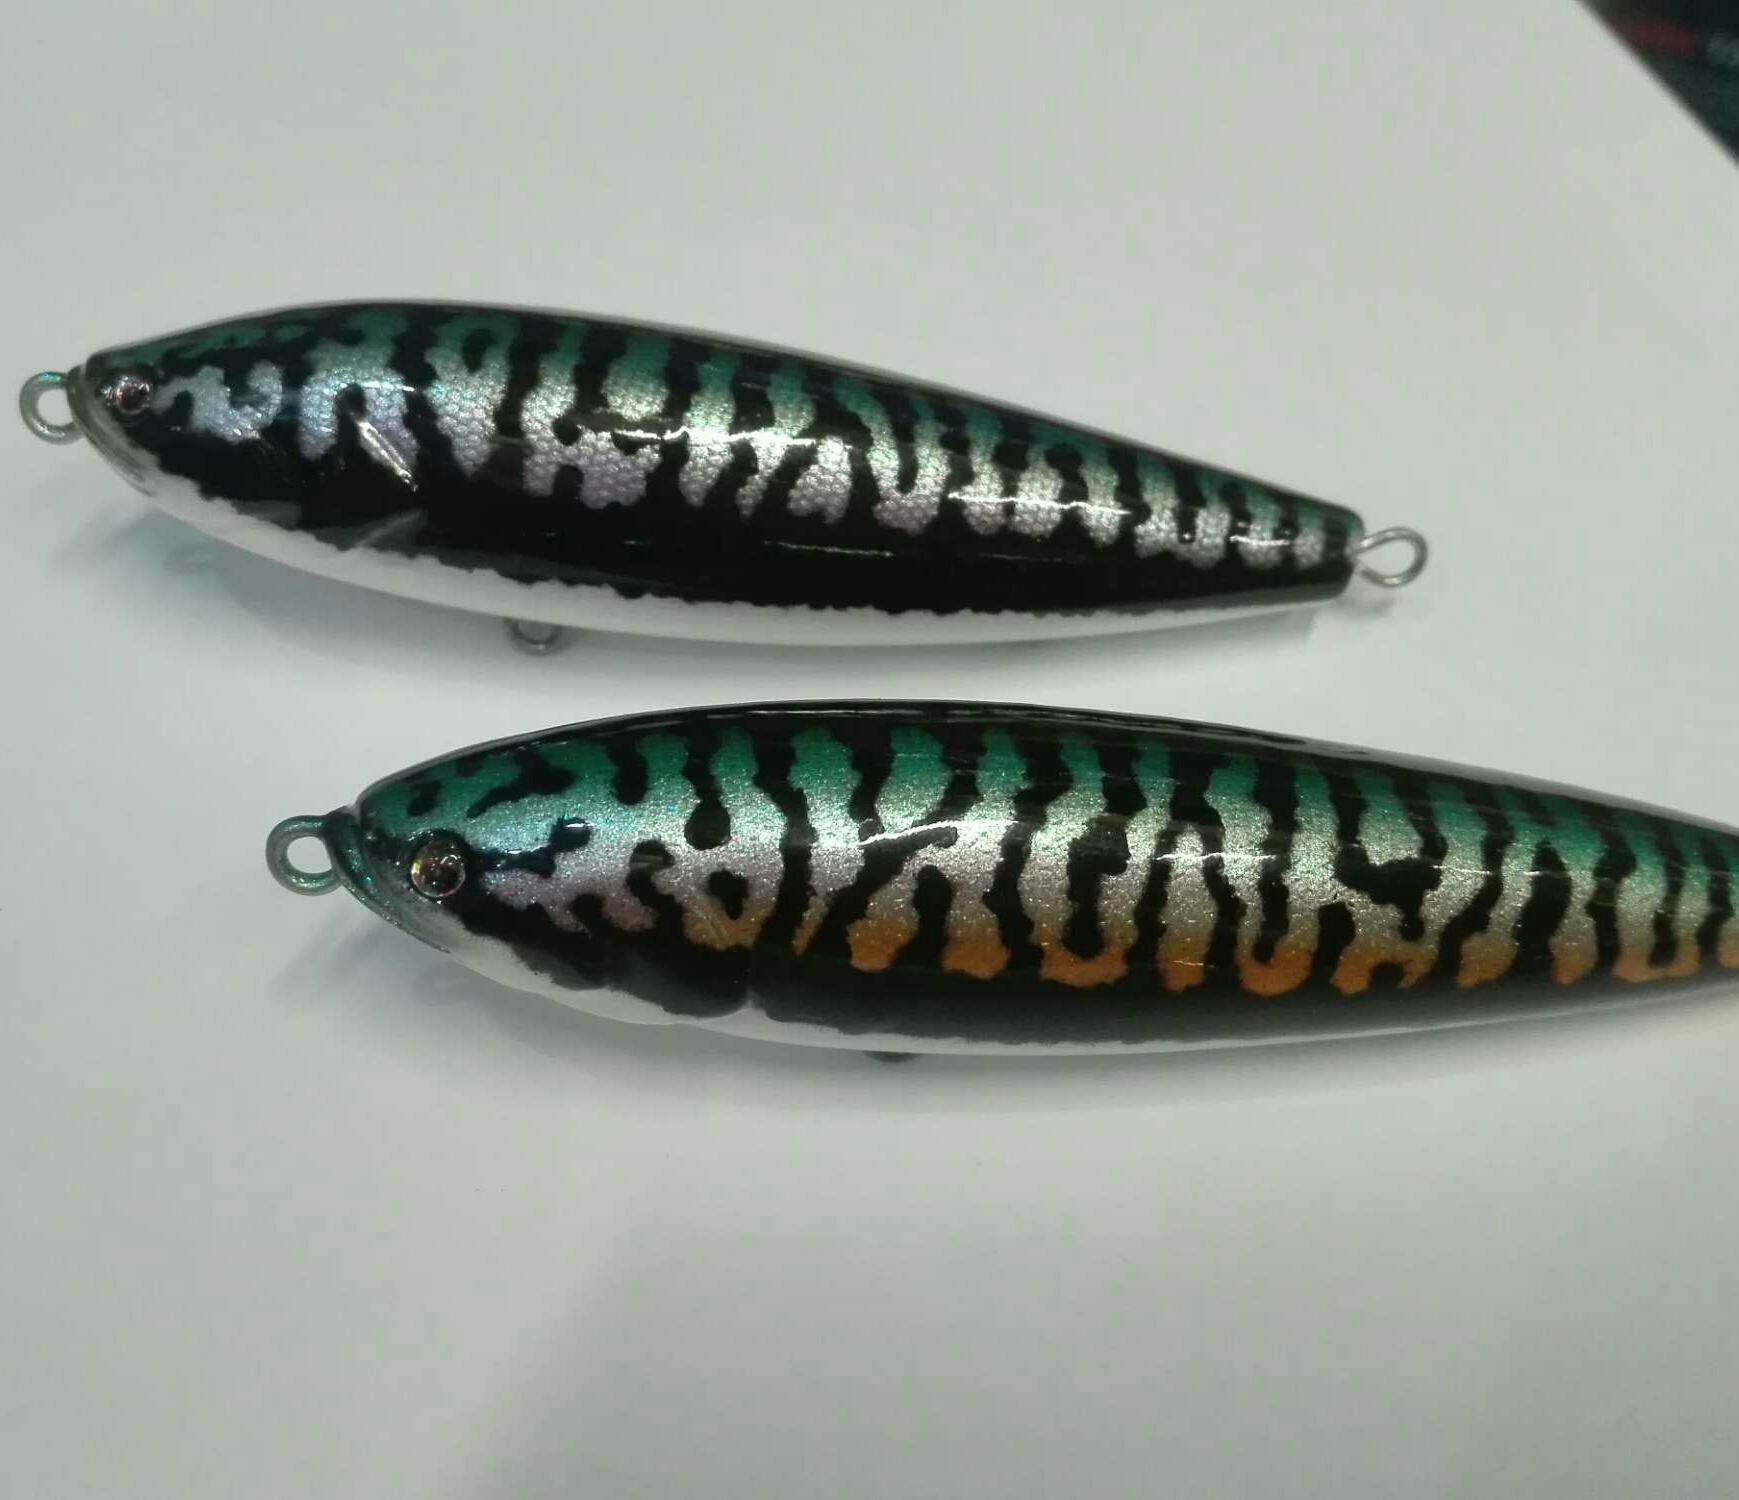 BABY TOMMAN LIMITED EDITION LURE 1pcs (Handmade)